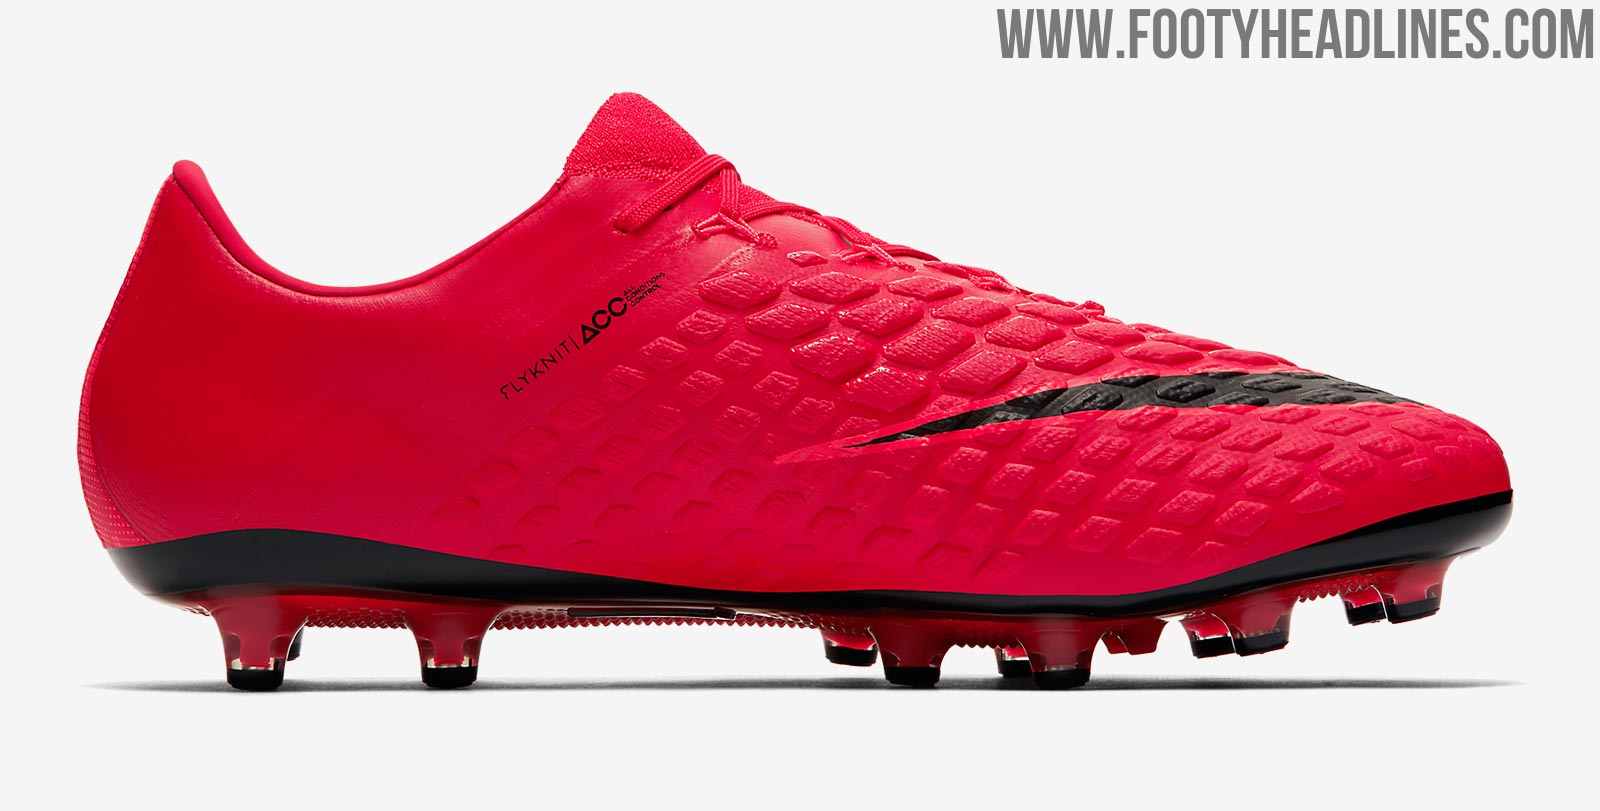 nike hypervenom phantom iii fire pack boot revealed. Black Bedroom Furniture Sets. Home Design Ideas